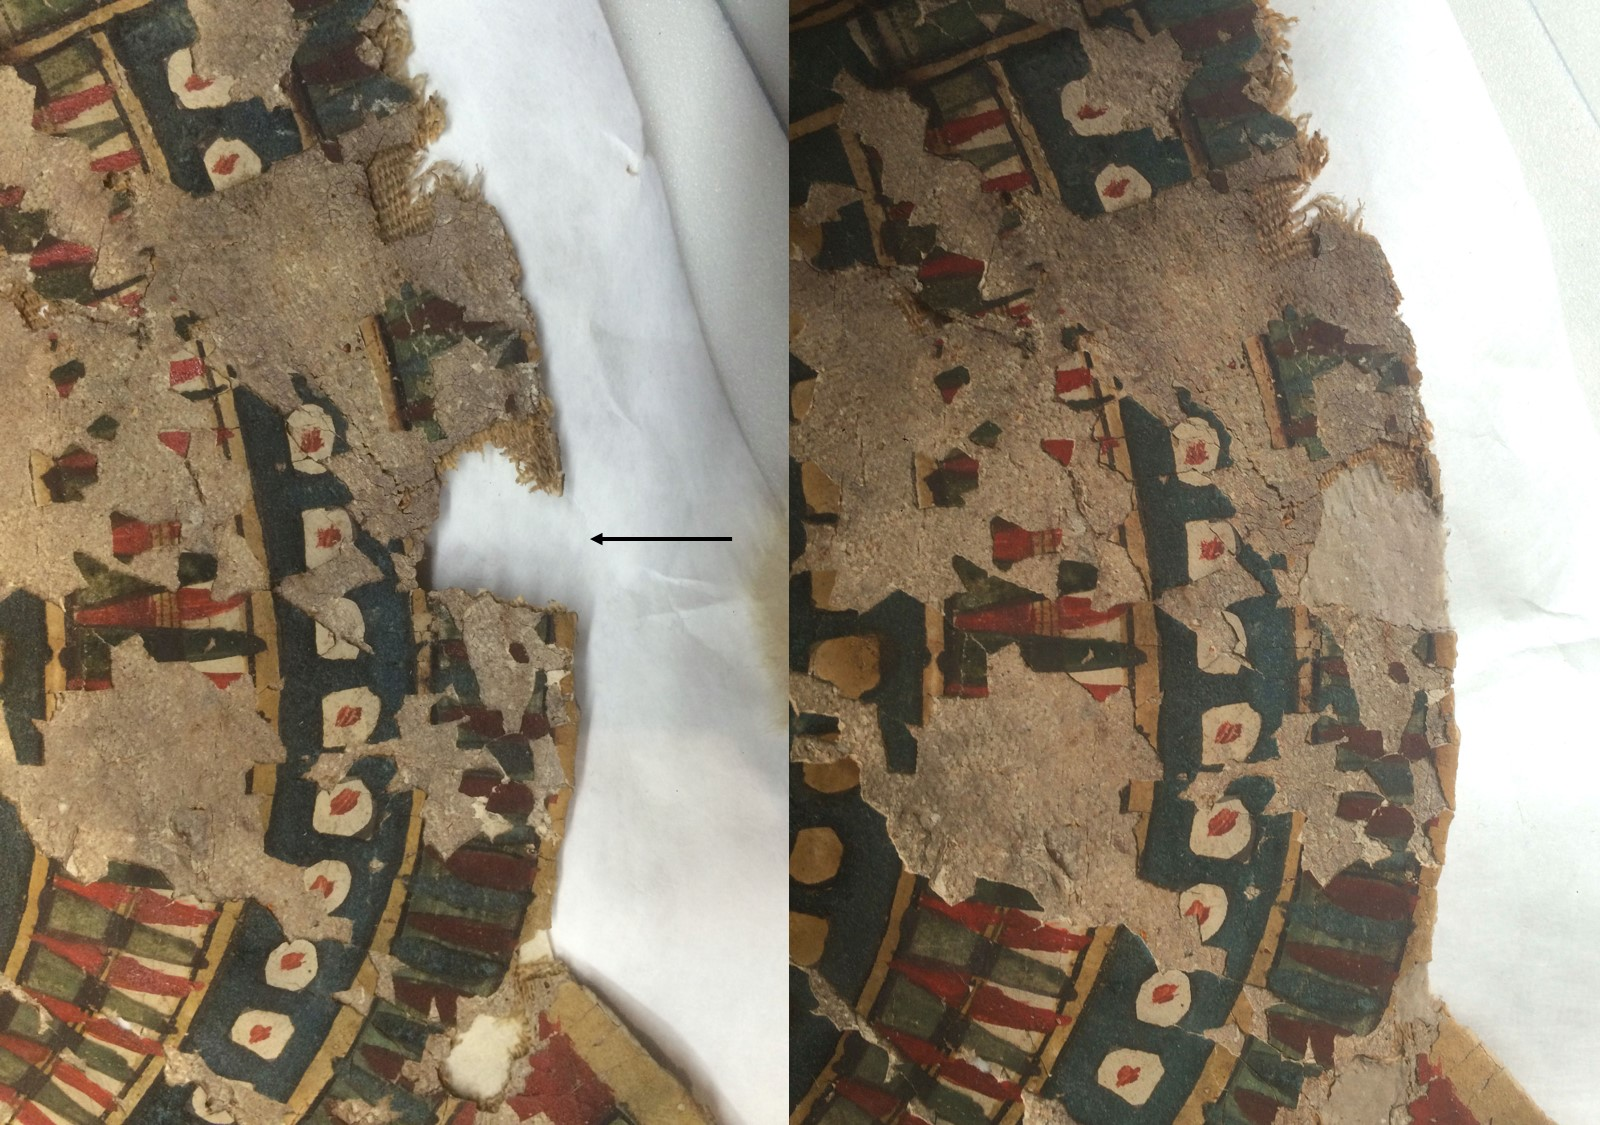 Detail image before (left) and after (right) filling a loss